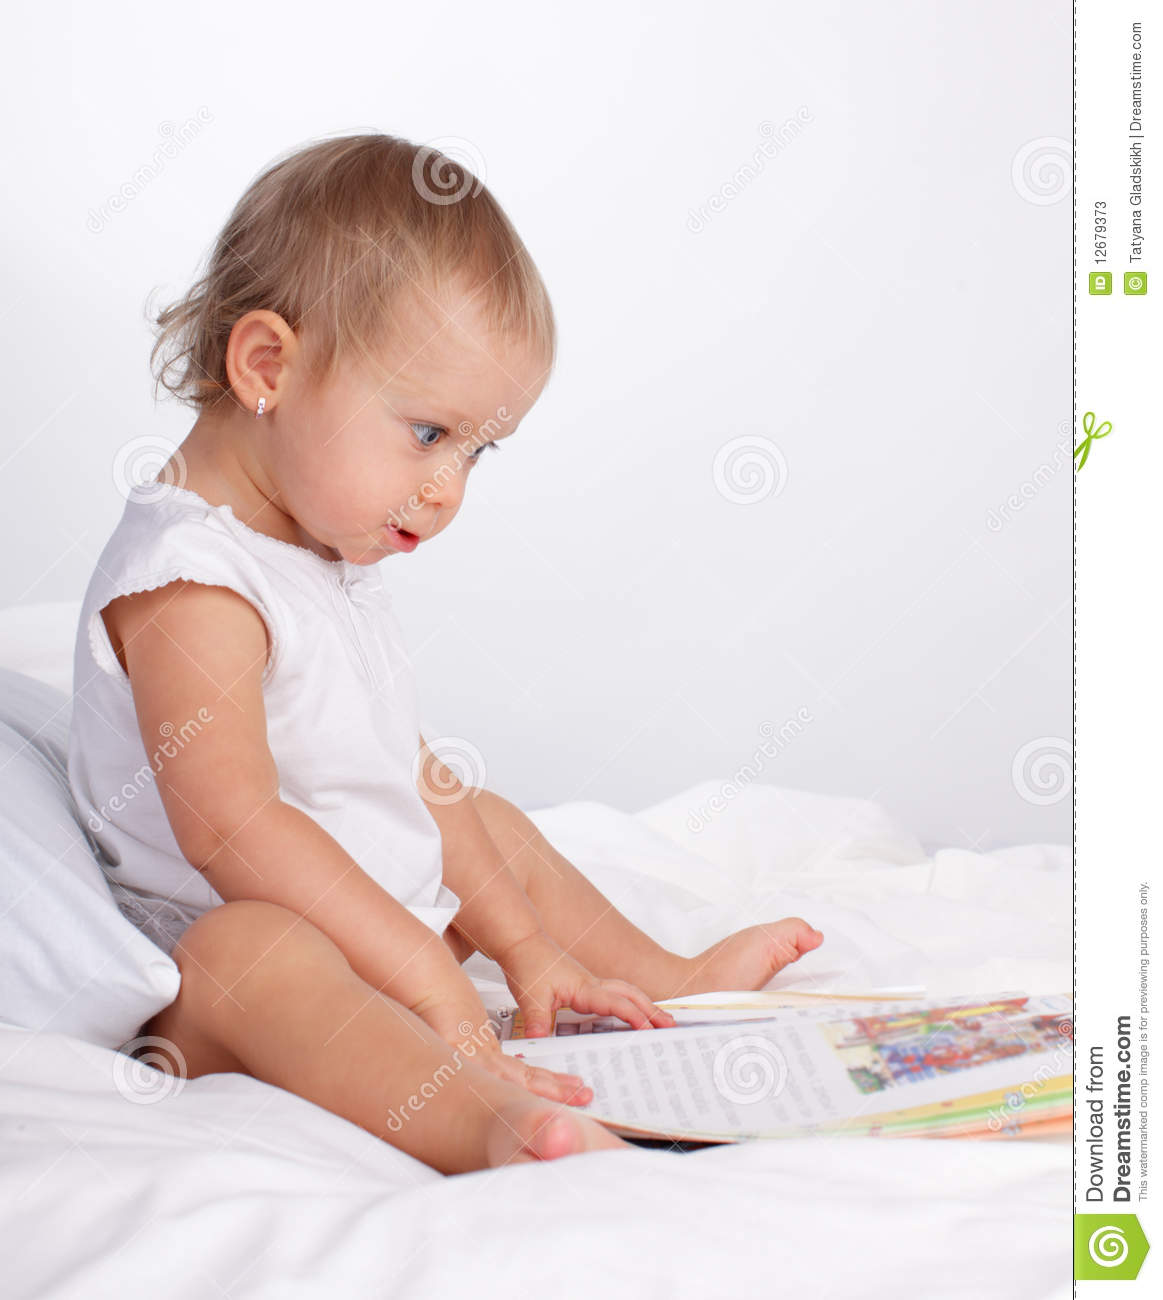 Baby Reading Book Stock Photos - Image: 12679373